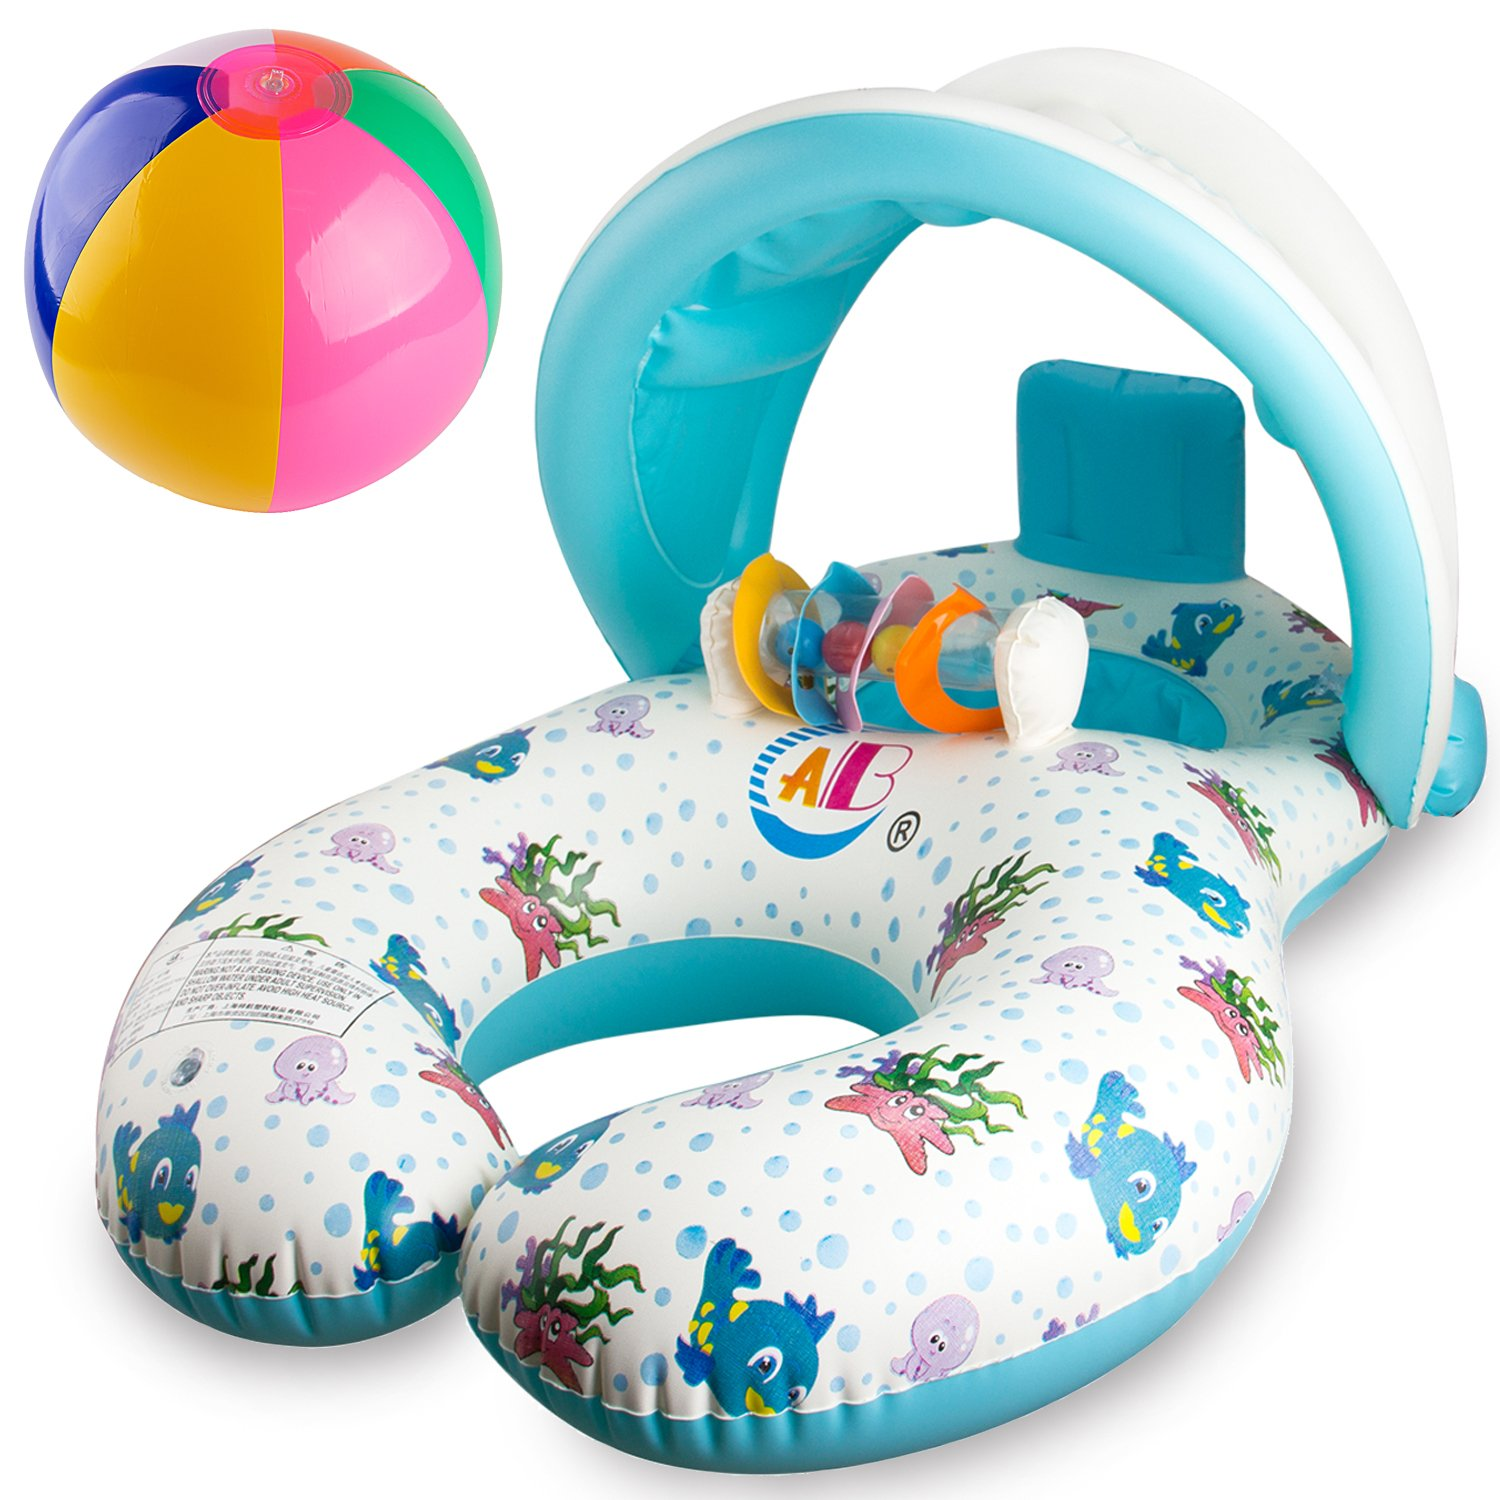 R • HORSE Baby Pool Float - Baby Swim Float Pool Toy with Mommy Swim Ring for 8 - 36 Months Old Baby - Removable Canopy with Water-polo and Fluorescent Wristband by R ? HORSE